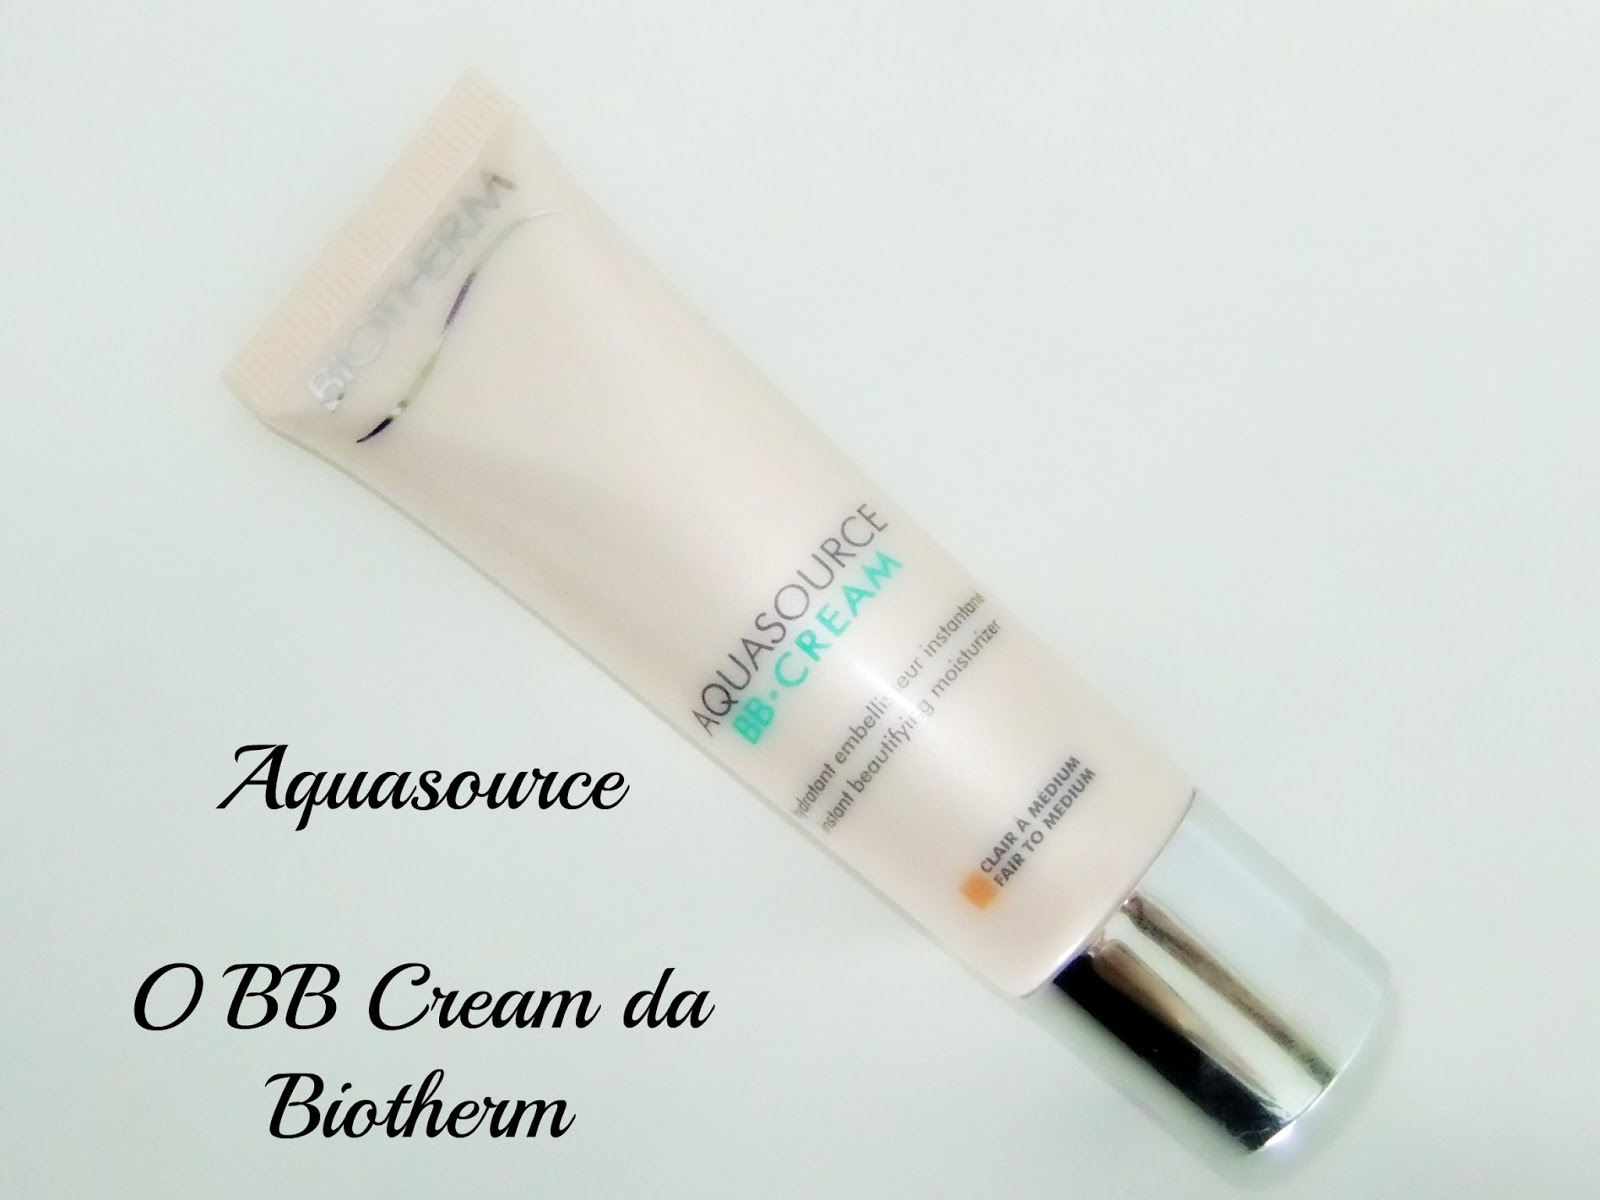 test aquasource bb cream da biotherm perturba es. Black Bedroom Furniture Sets. Home Design Ideas